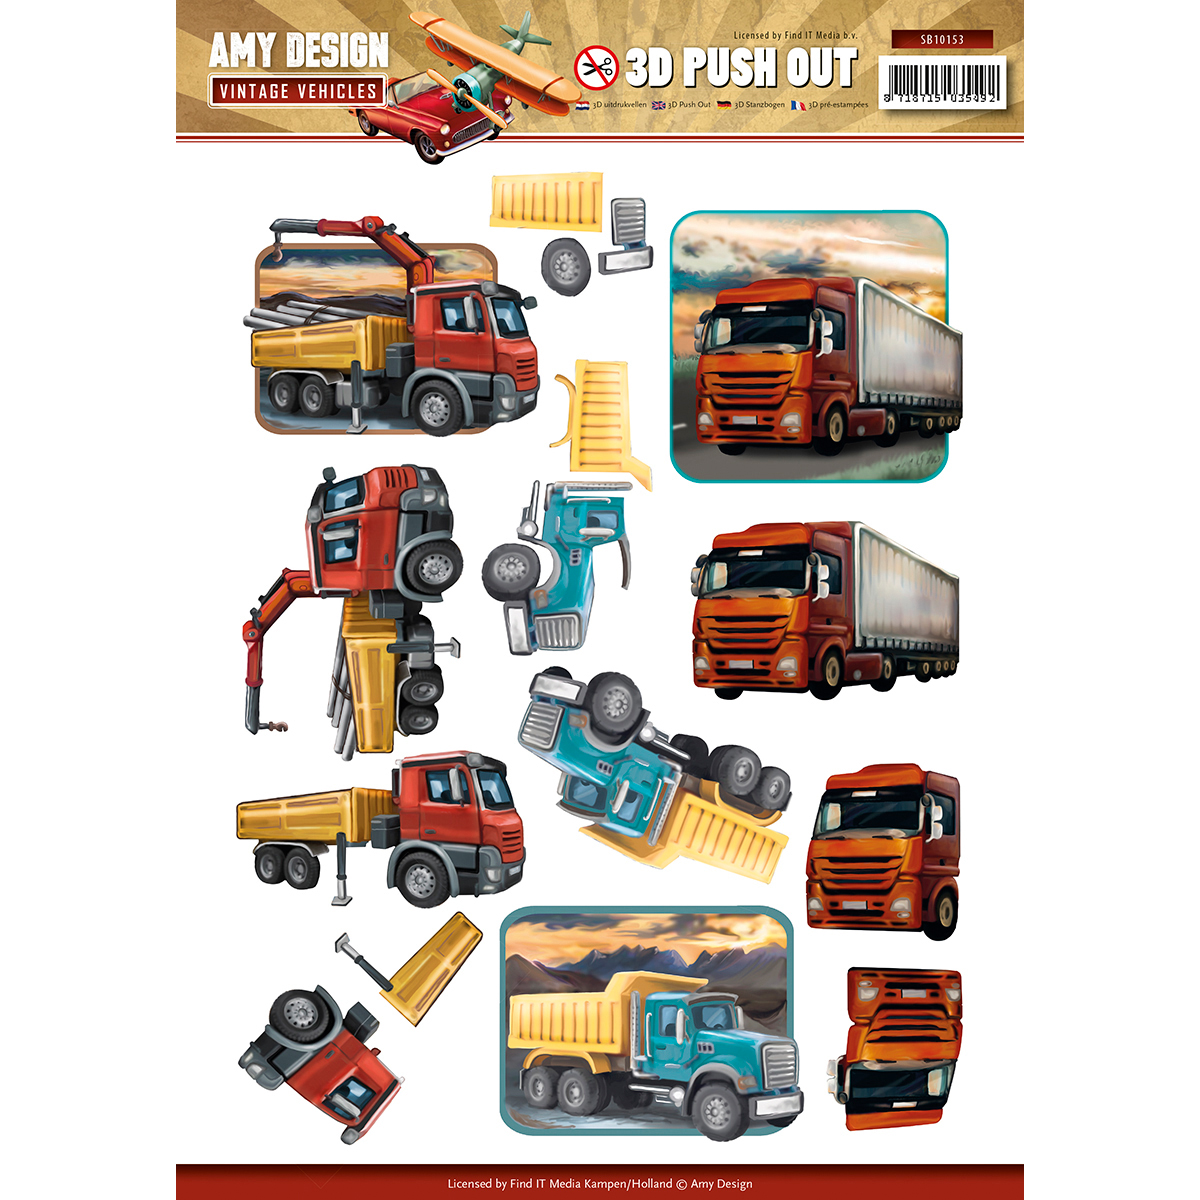 Heavy Equipment - Find It Amy Design Vintage Vehicles Punchout Sheet